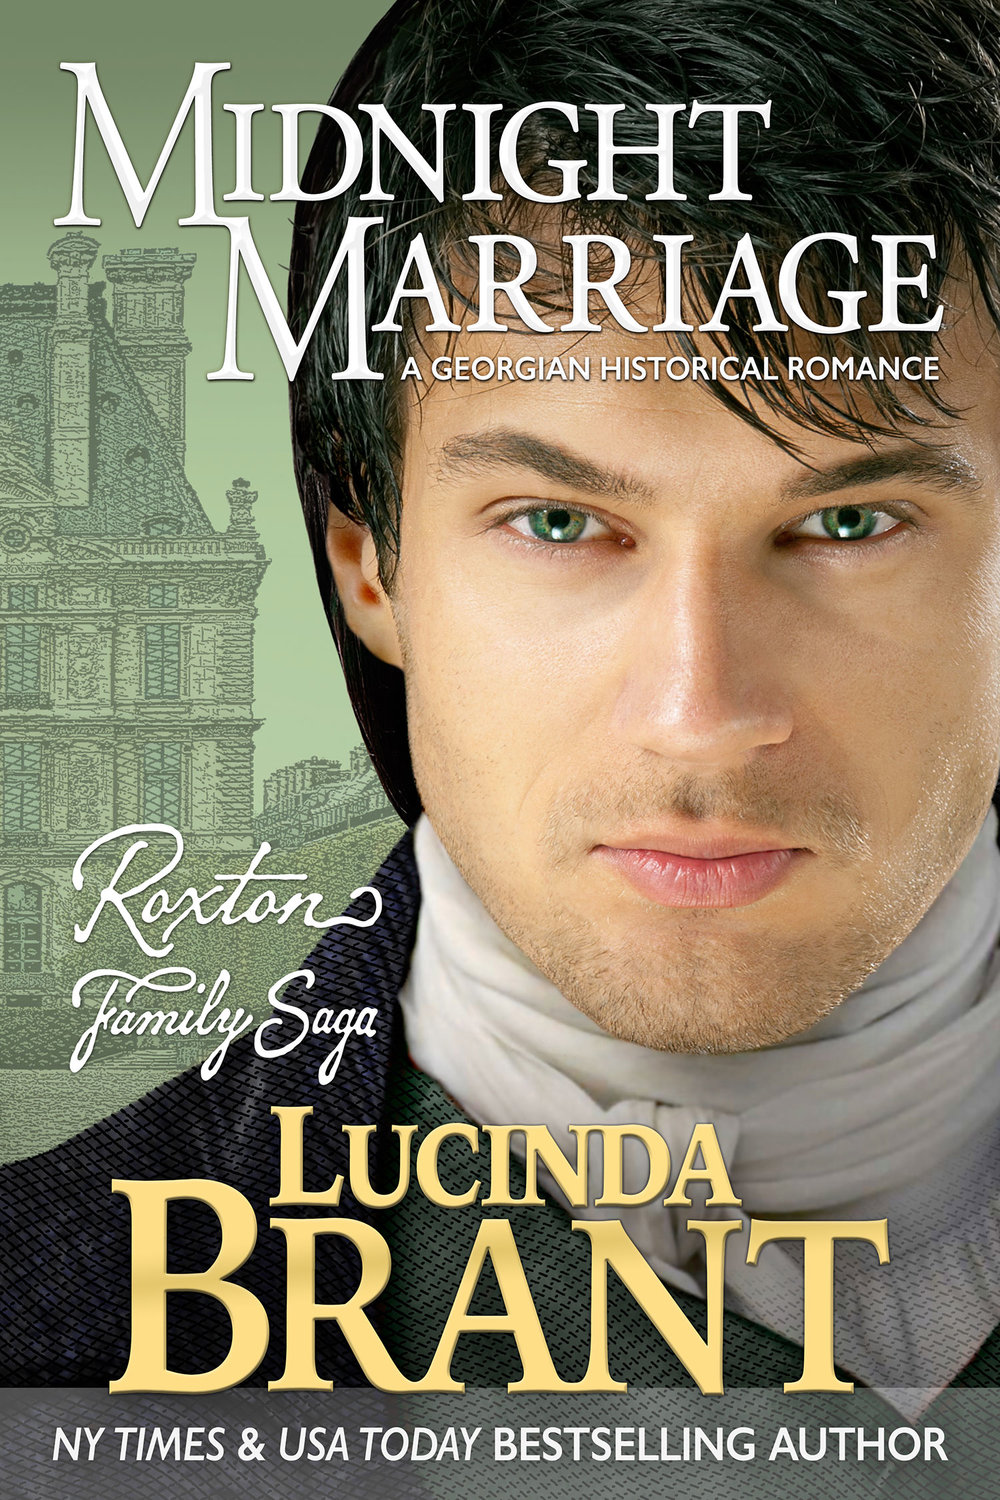 midnight-marriage-lucinda-brant-ebook.jpg